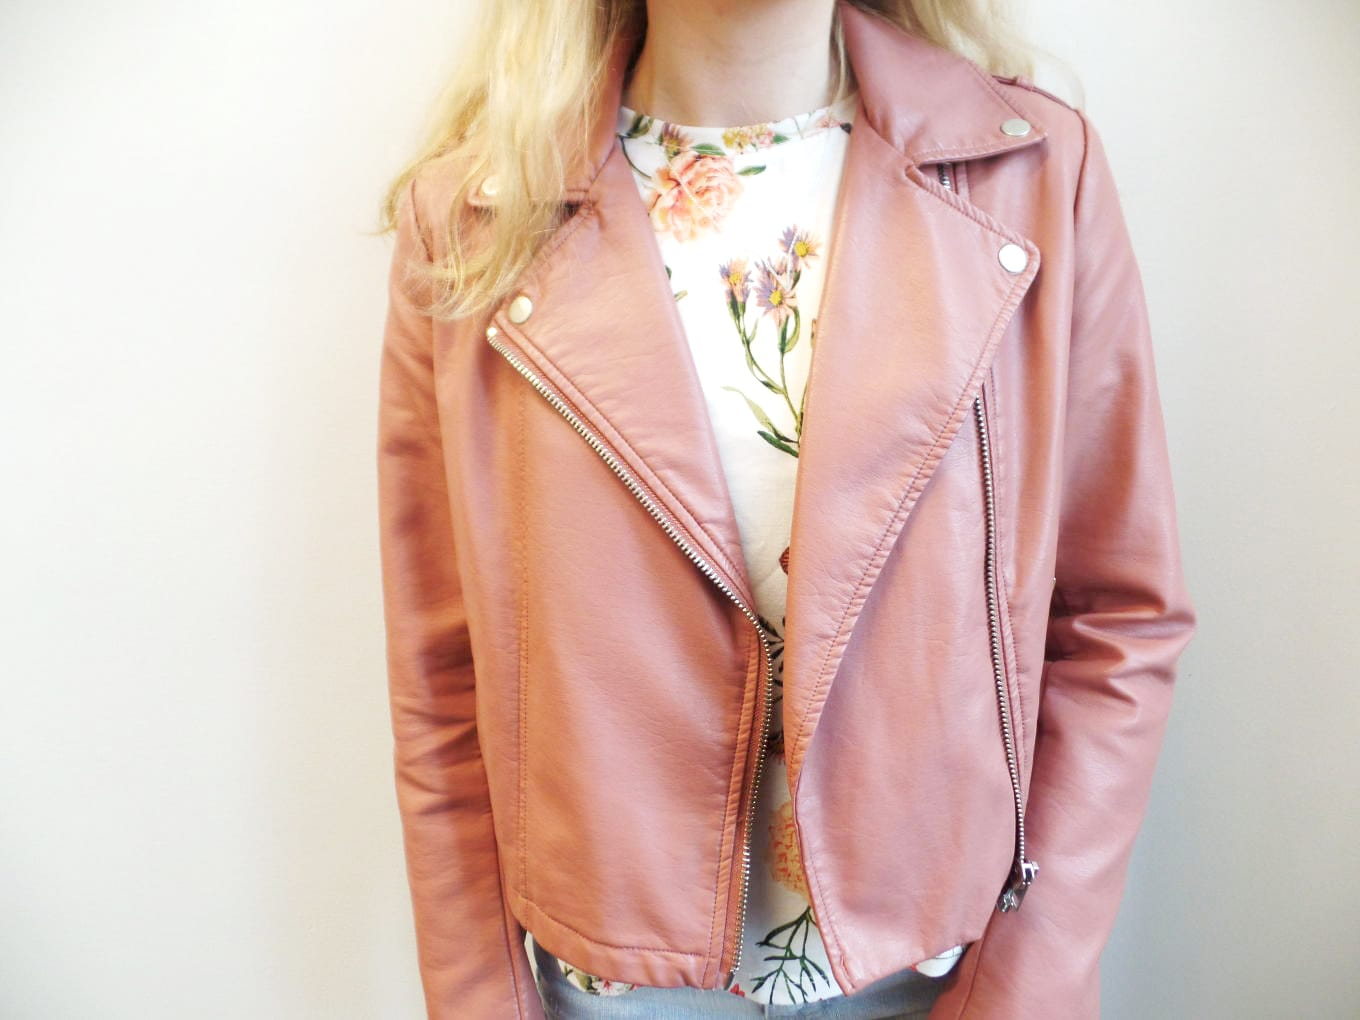 Veronica wears a dusty rose faux leather motorcycle jacket with a white floral shirt.